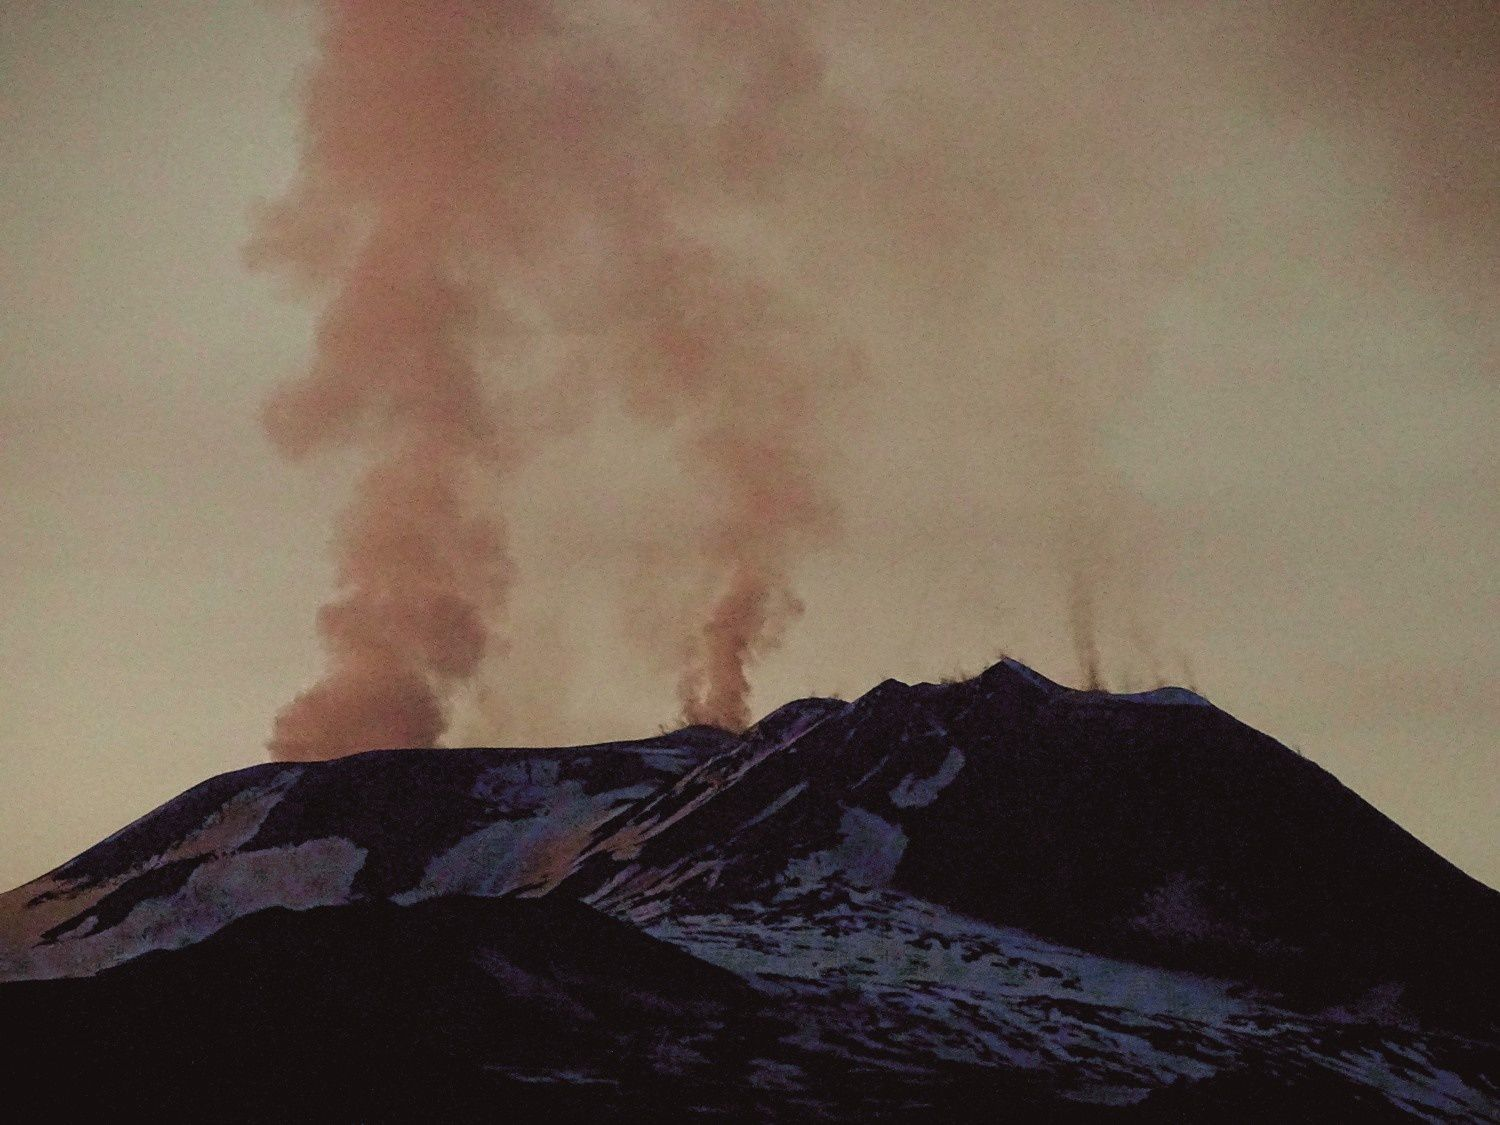 Etna - 07.04.2018 at sunset - from left to right: the plume of Bocca Nuova, in the center Voragine (small mouth on the eastern edge of the crater, and a weak degassing of the NSEC - photo Boris Behncke.